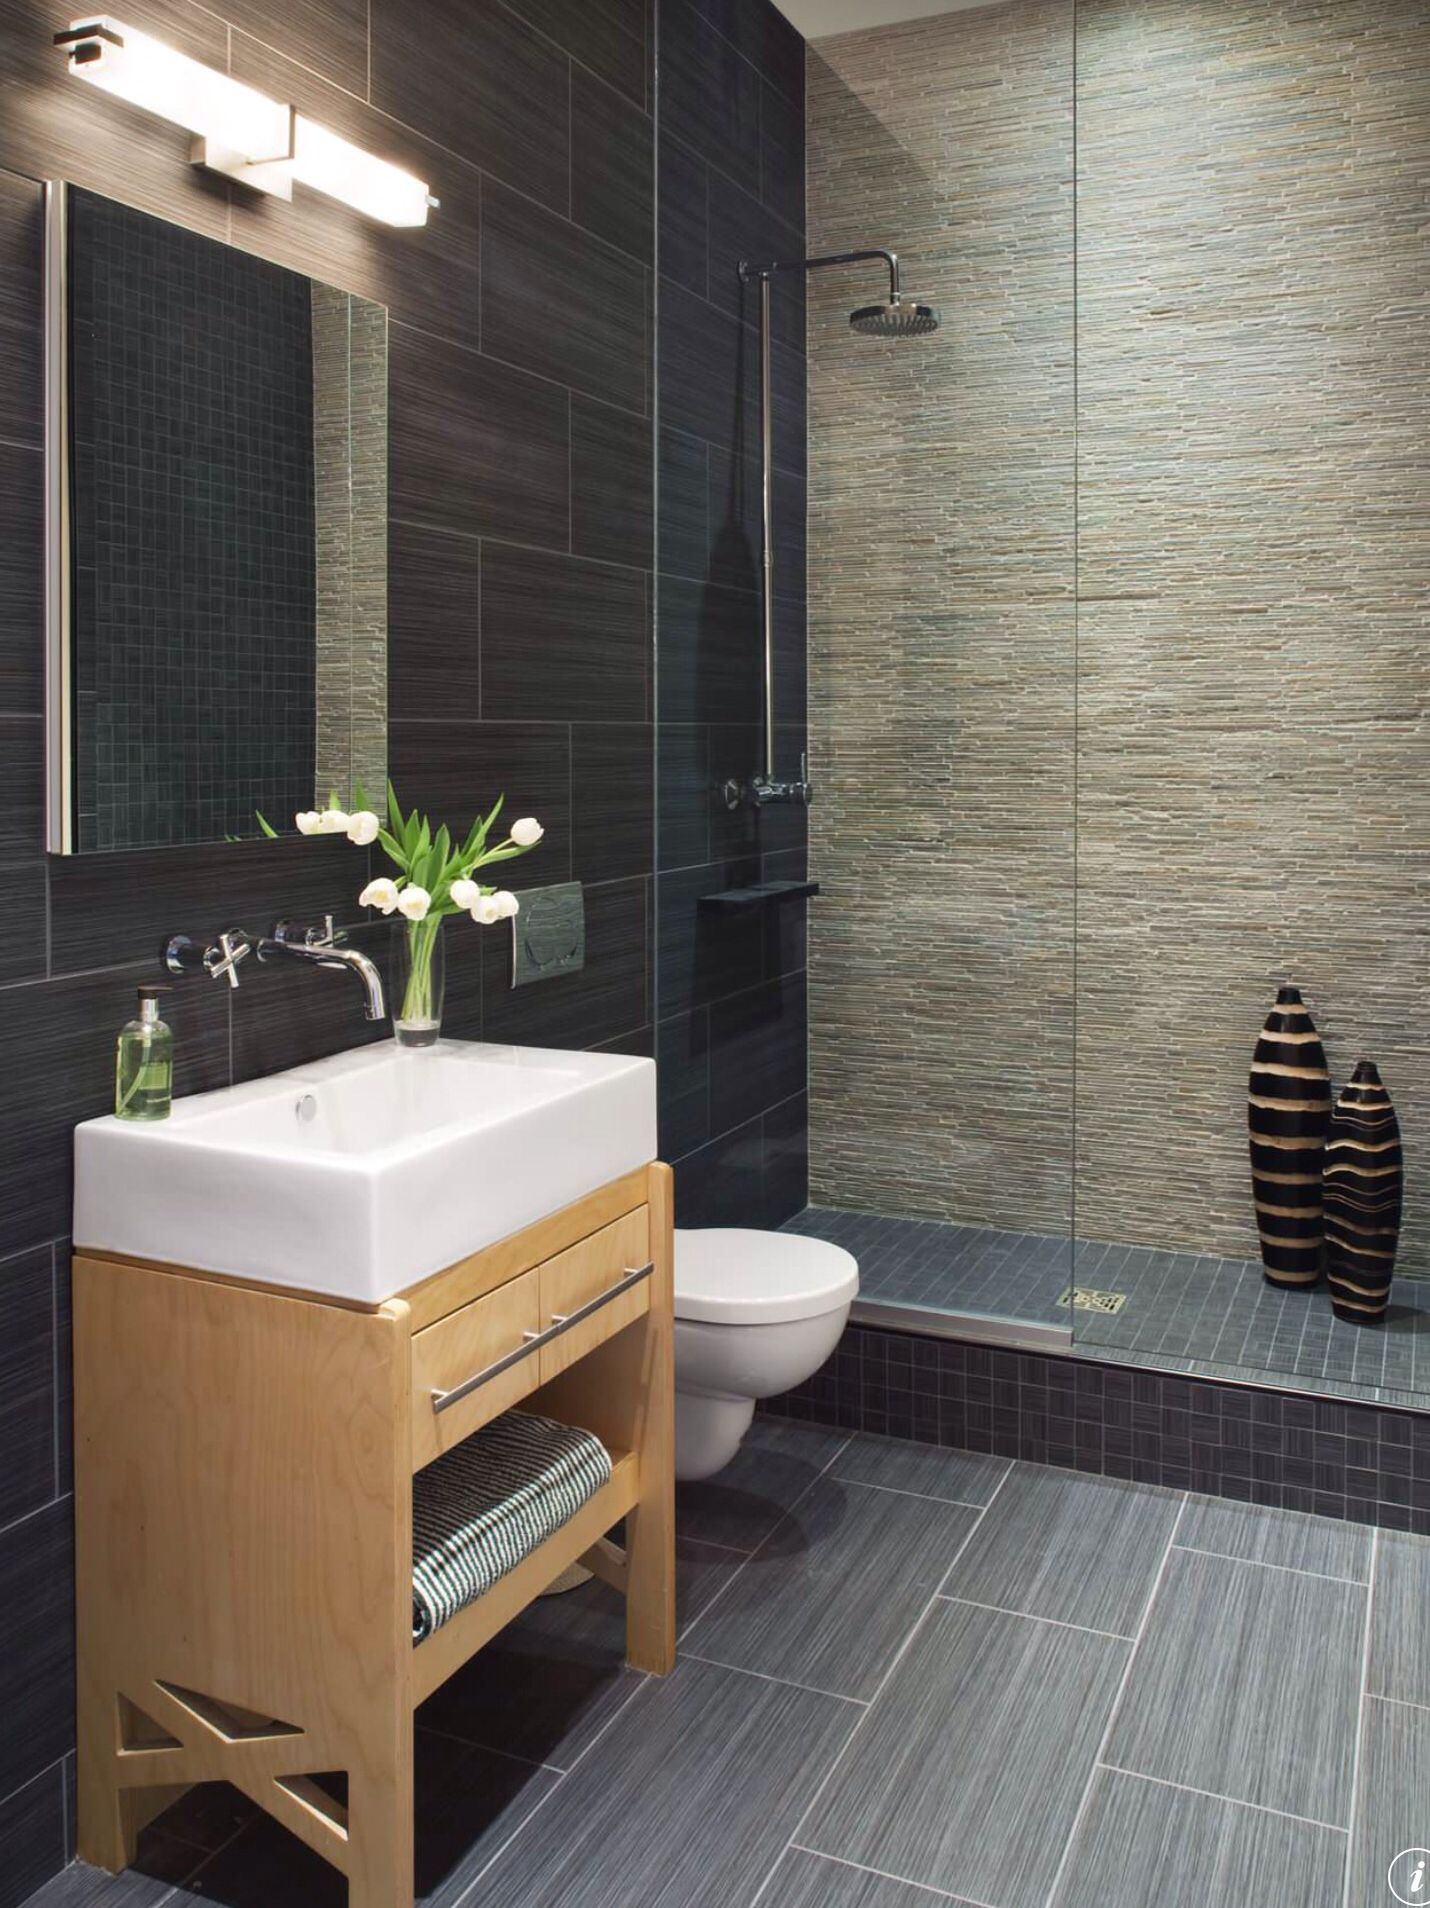 simple modern design of bathroom | Small bathroom remodel, Bathroom design small, Contemporary bathroom designs